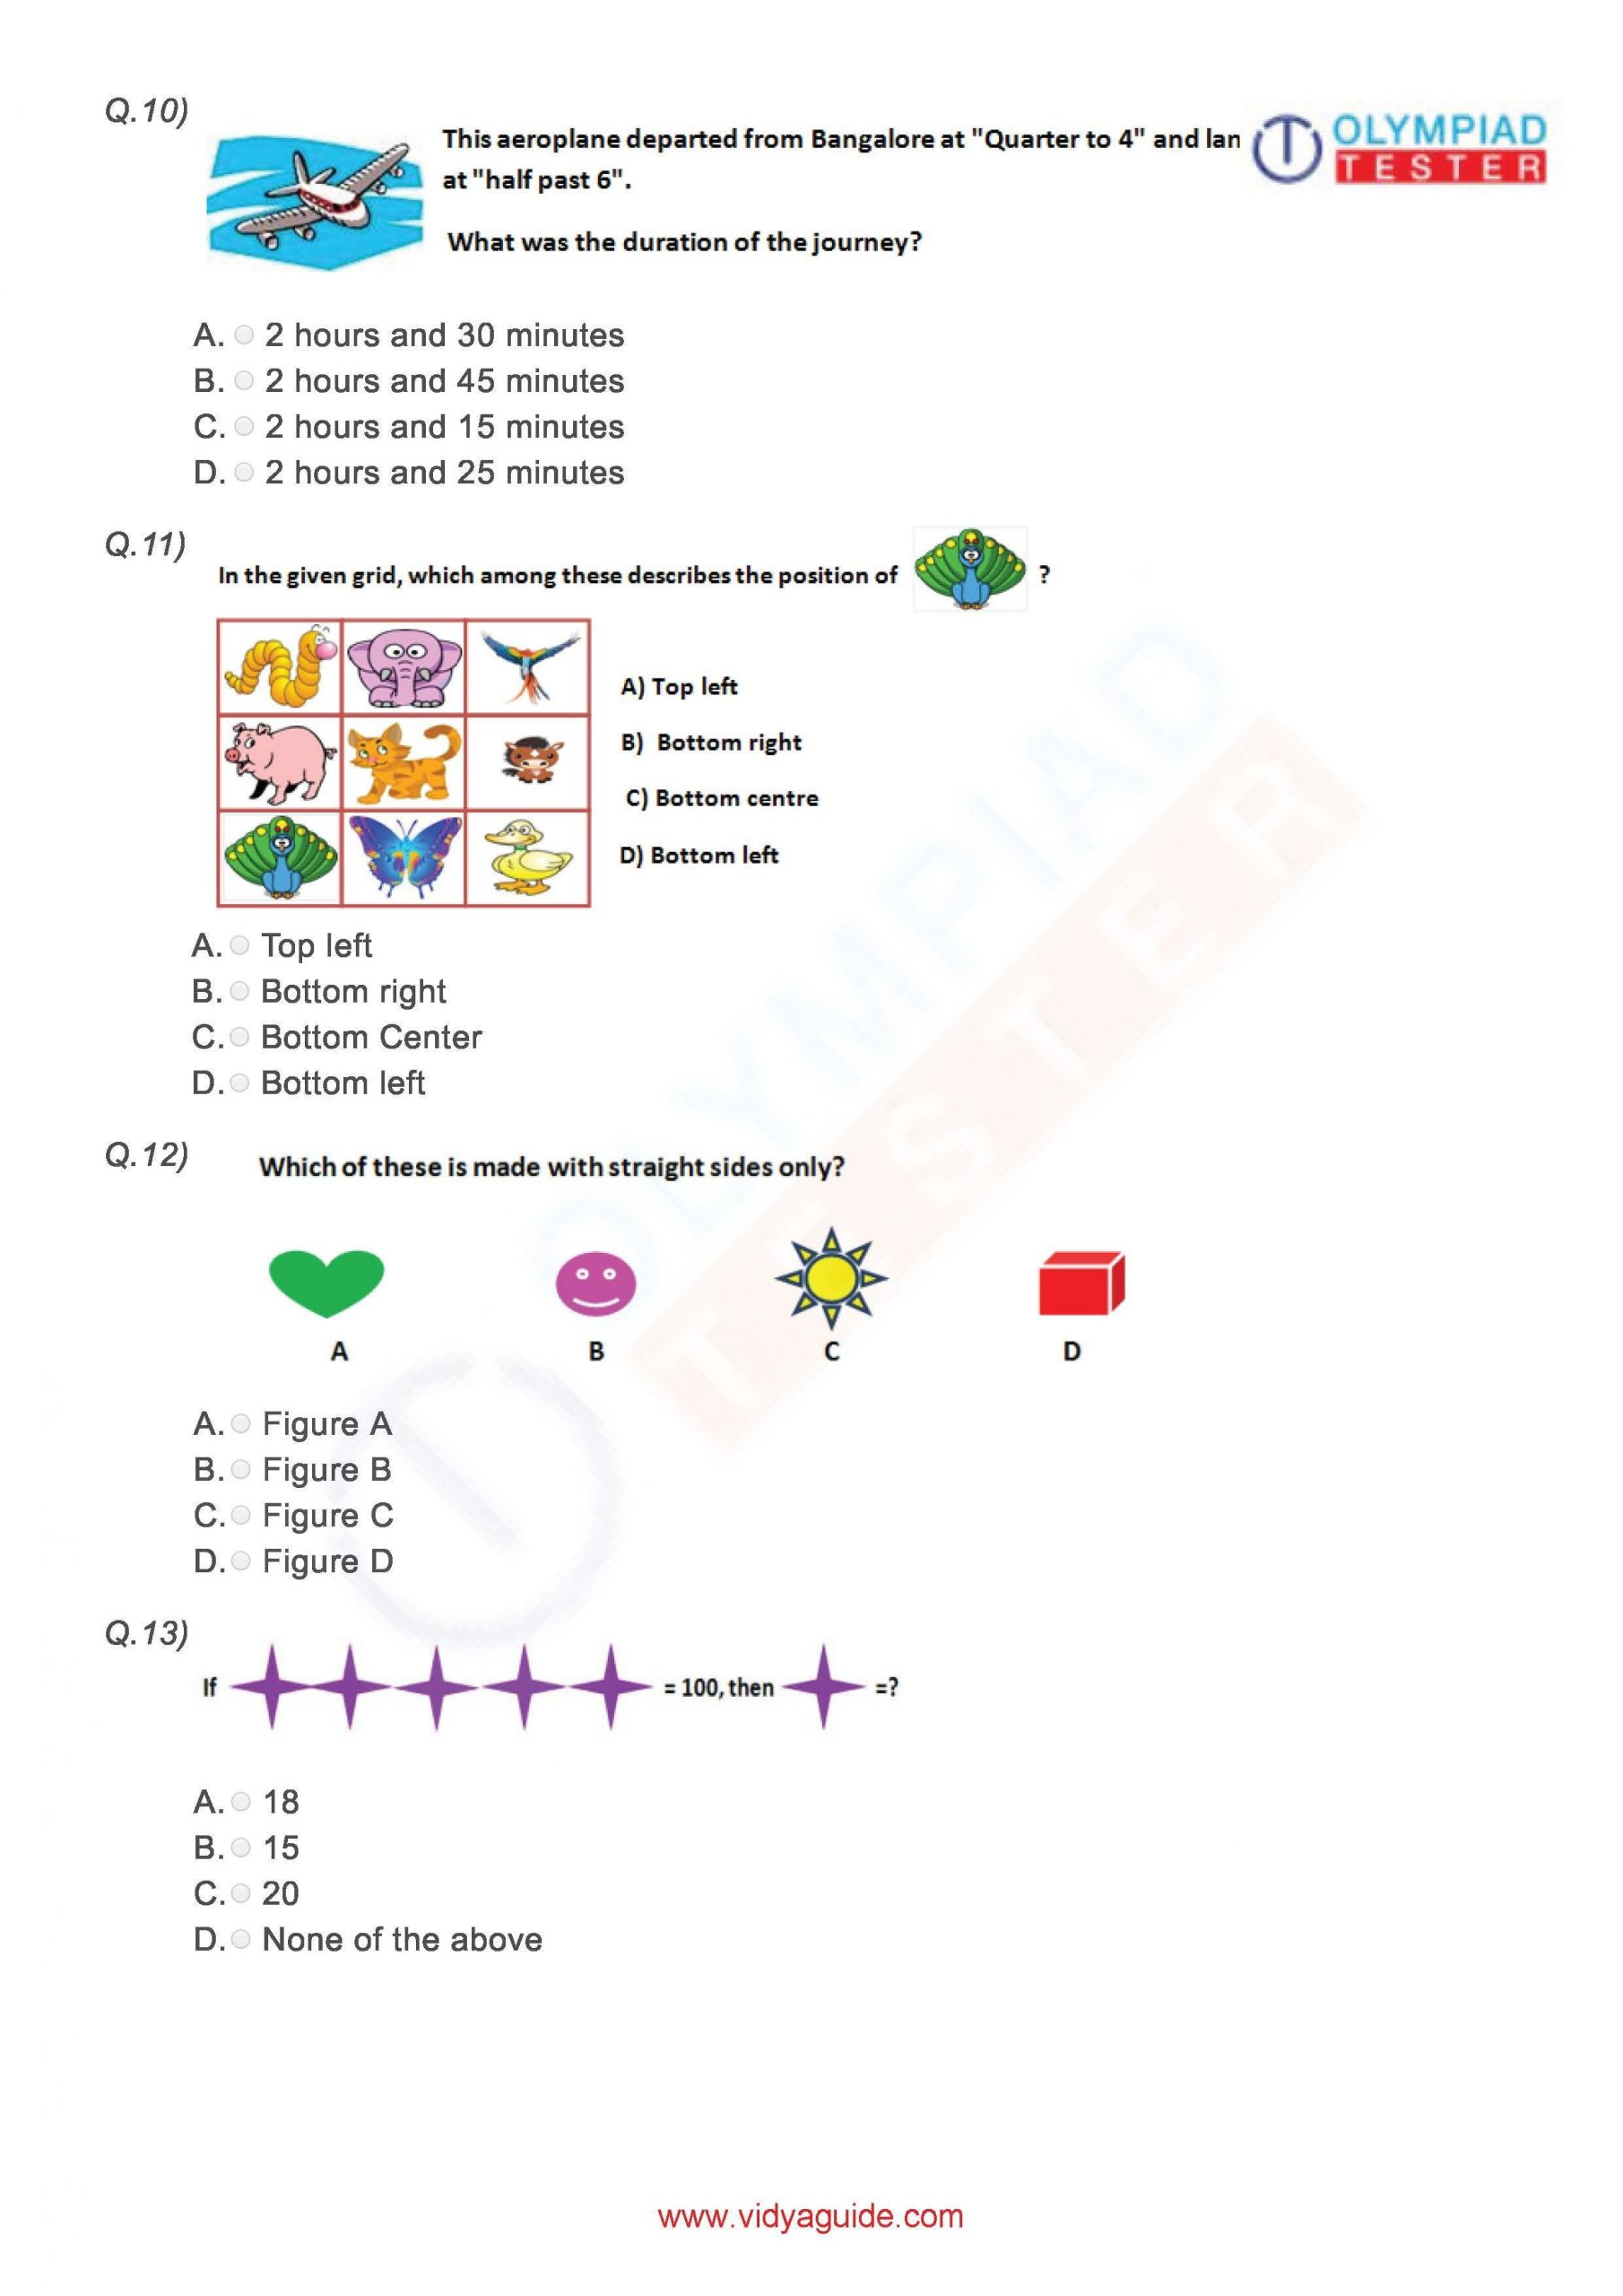 Download these printable Grade 3 Mathematics worksheets or